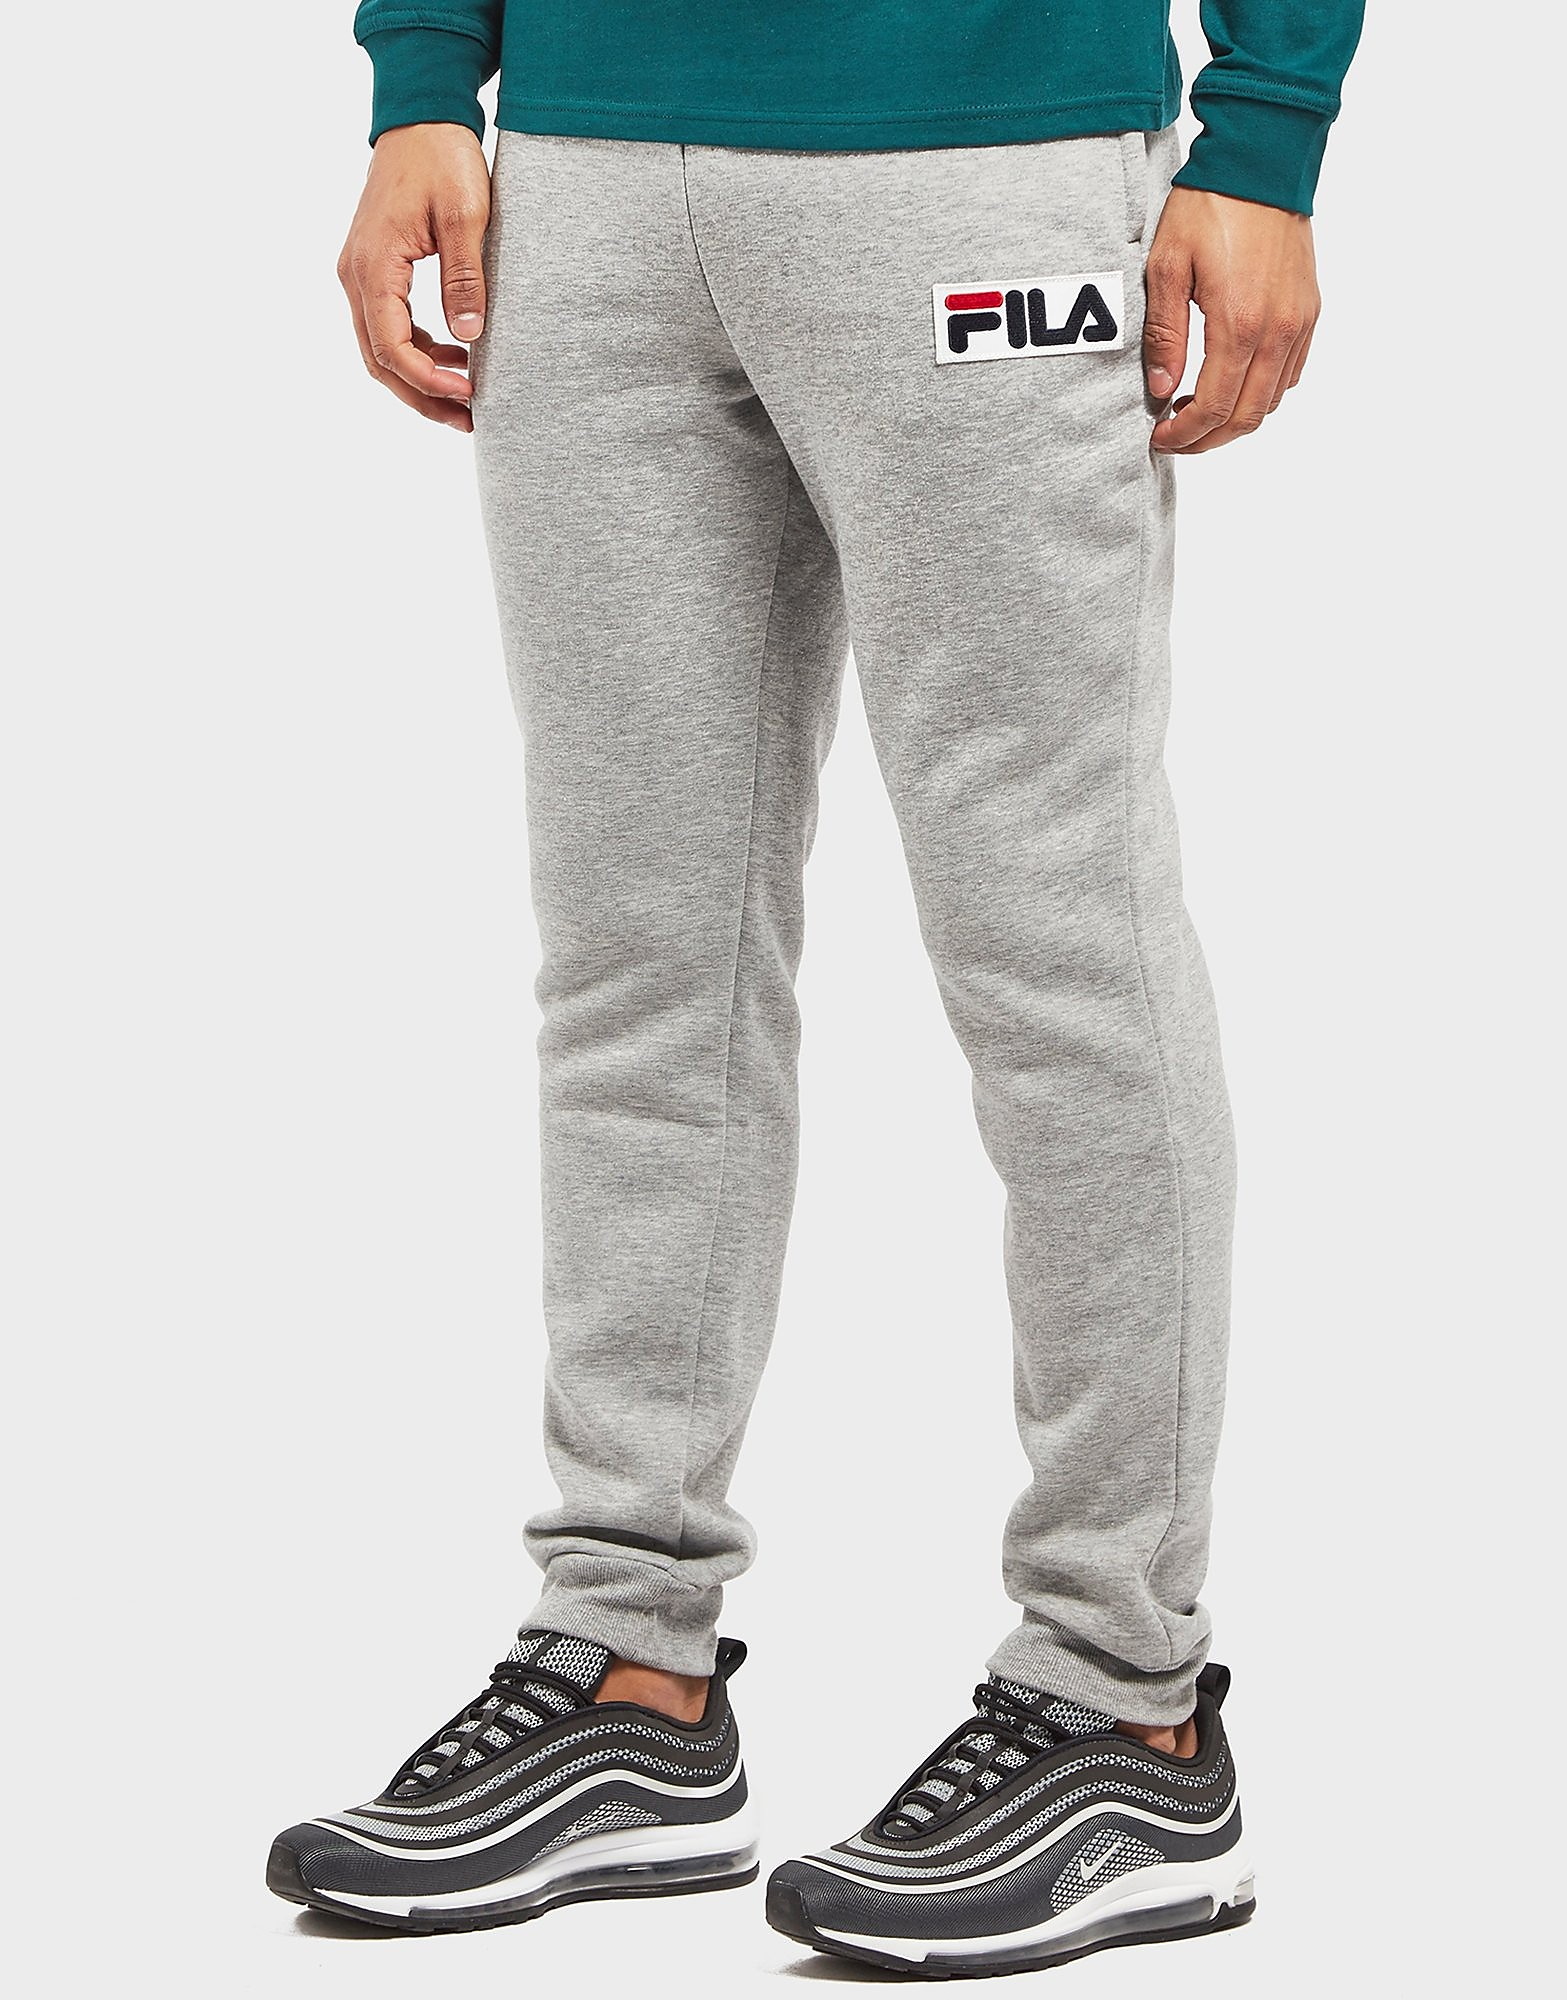 Fila Lazey Fleece Pant